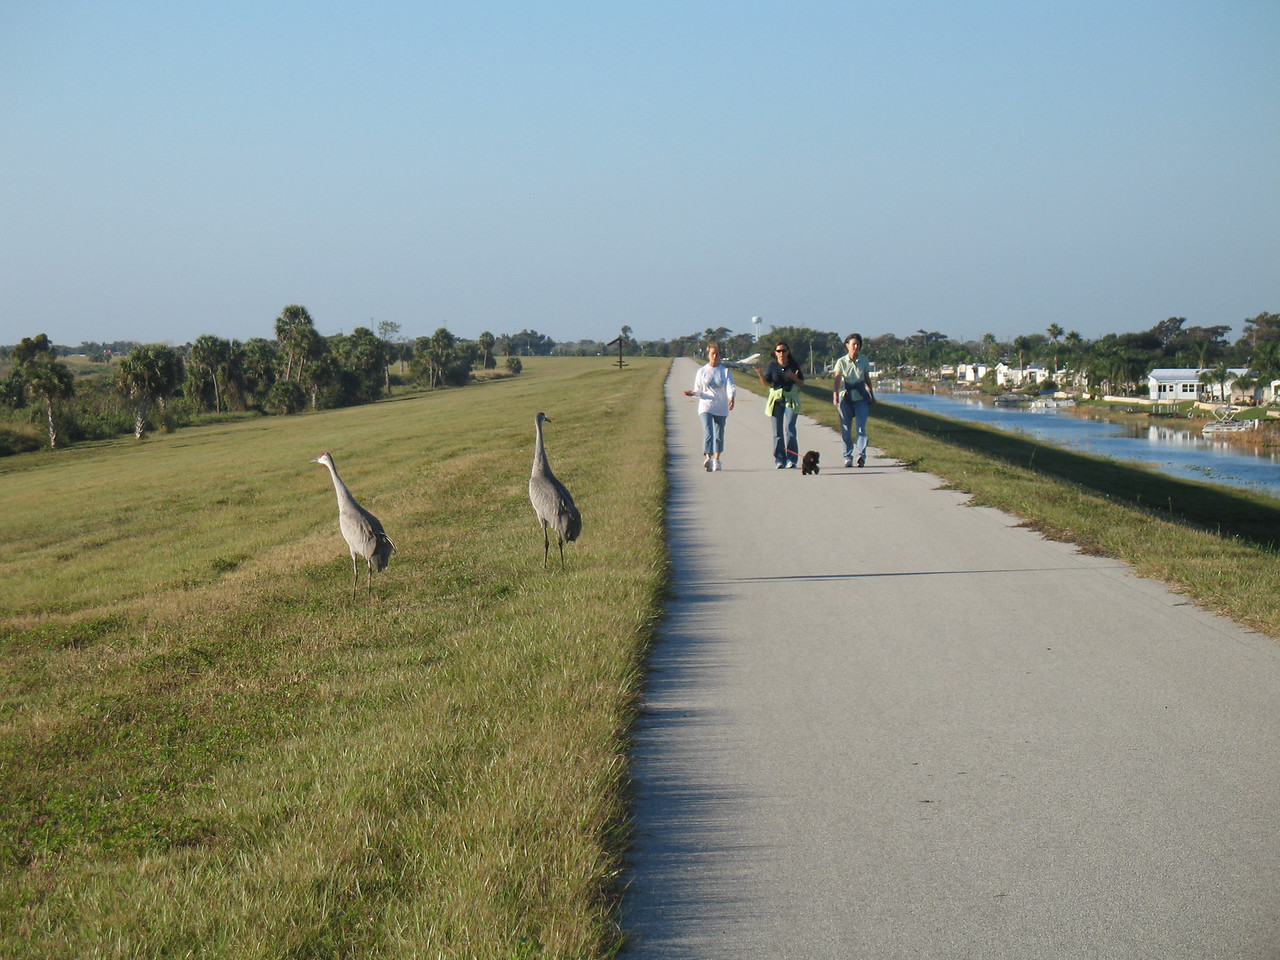 Strolling the dike with sandhill cranes nearby (Sandra Friend)